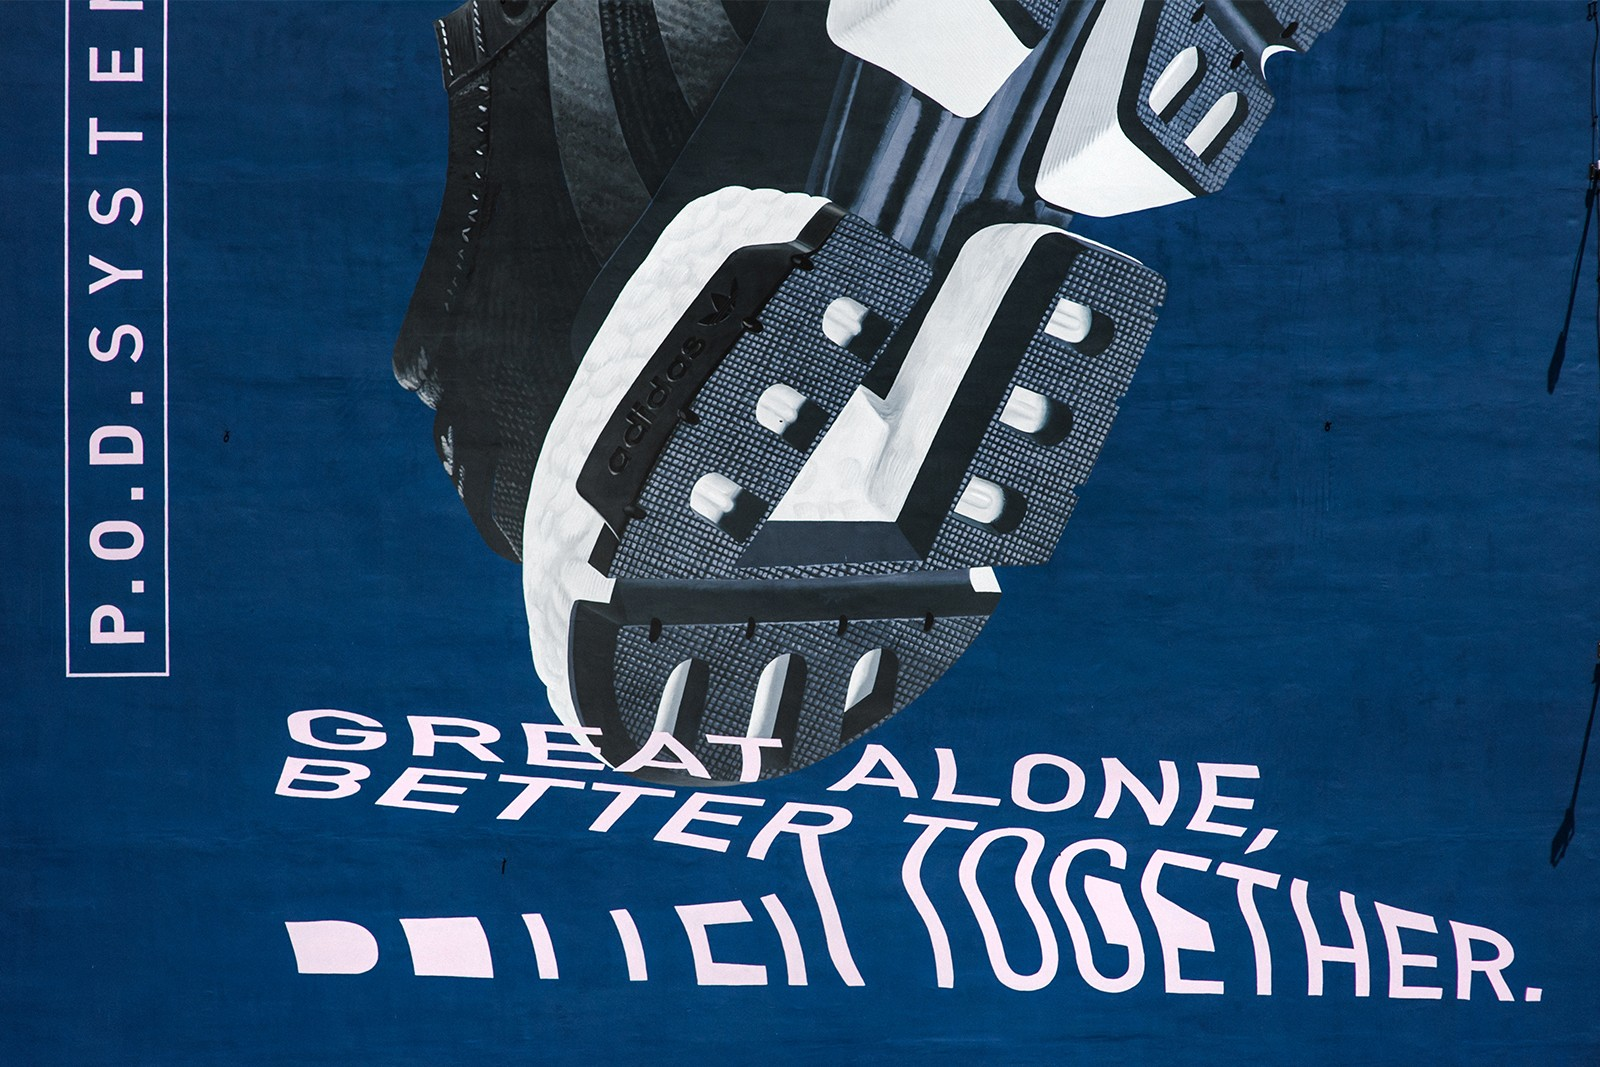 Mural Adidas Great alone better together Bracka.jpg | Adidas P.O.D SYSTEM | Portfolio